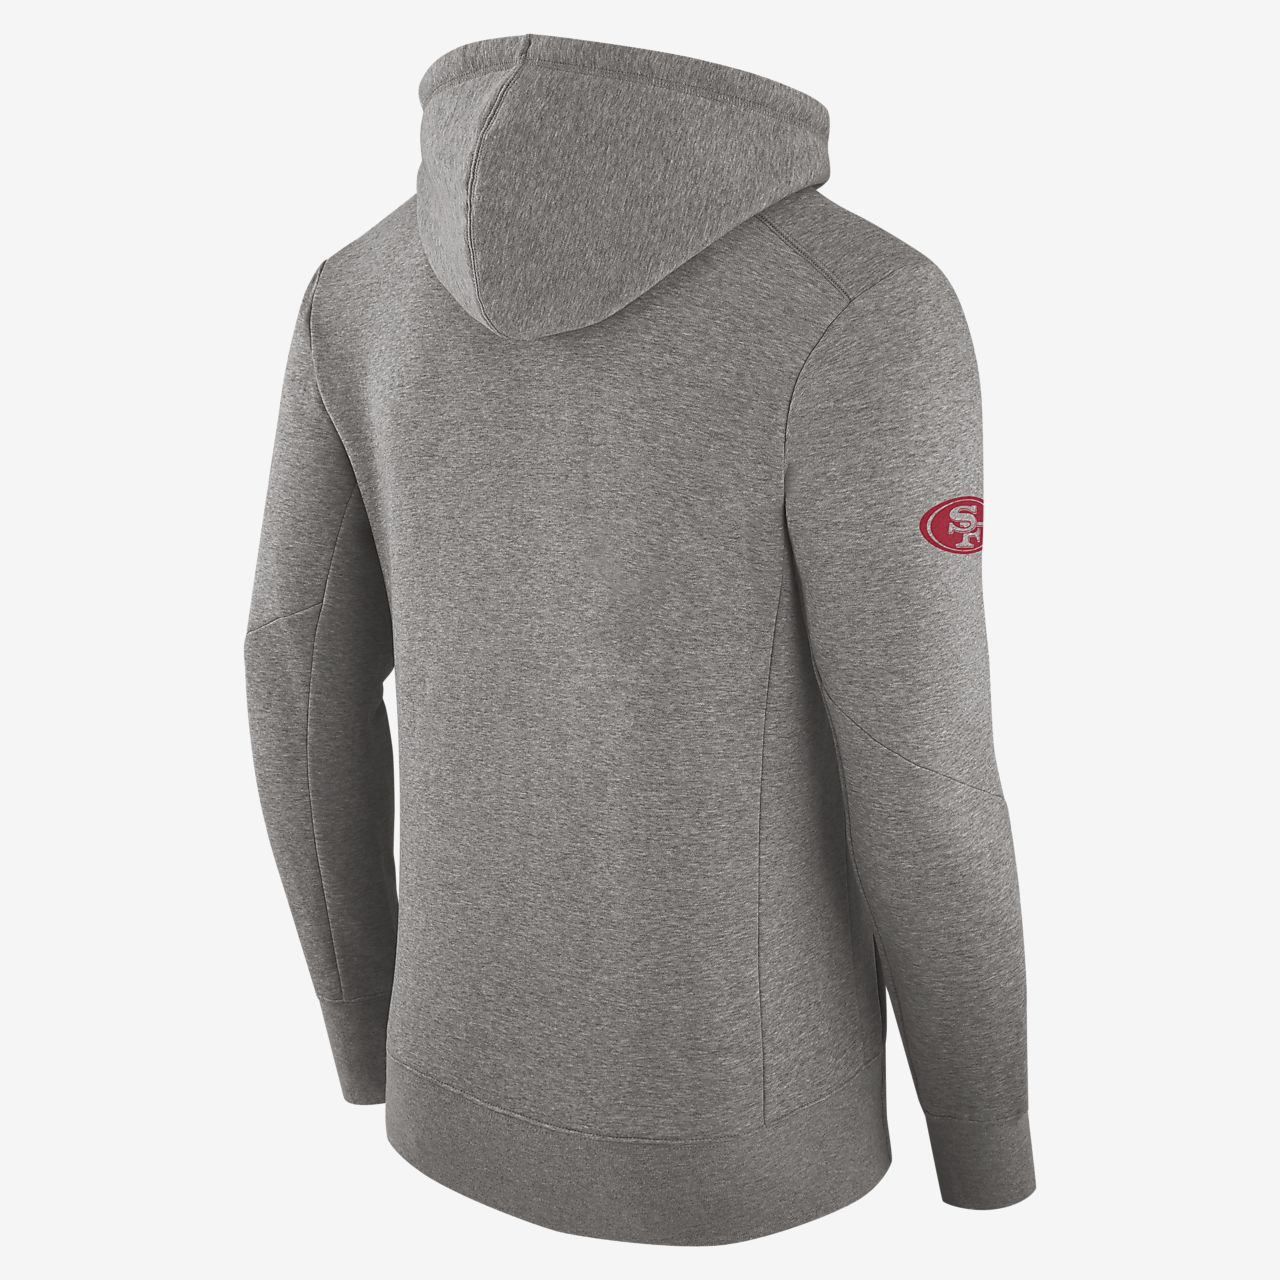 P49ers Capuche Be nfl Fleece Fly Nike Homme Sweat À Pour wv5gFYqv